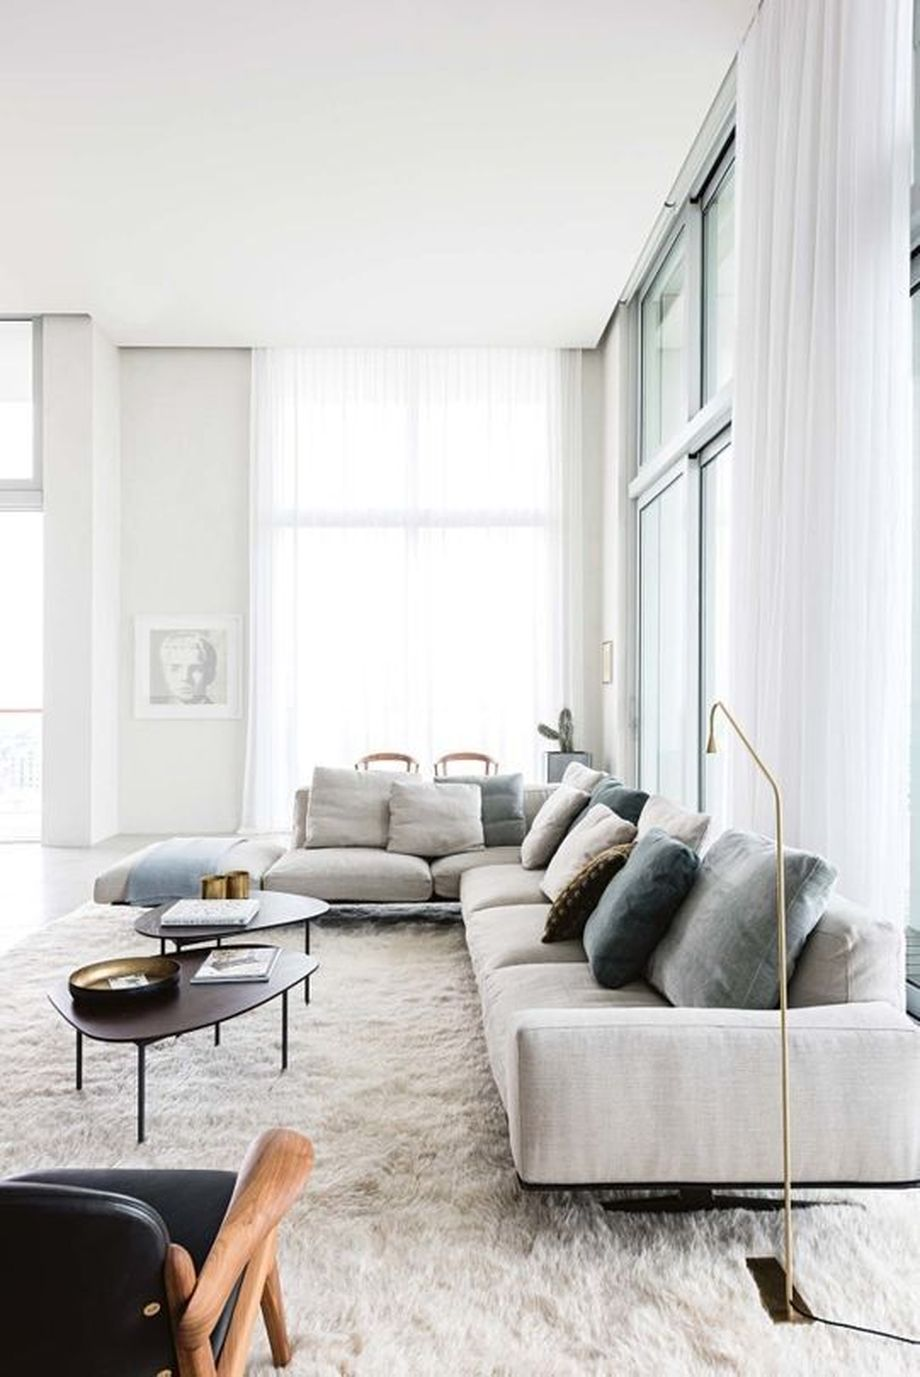 50 Magnificent Luxury Living Room Designs 42 - Hoommy.com